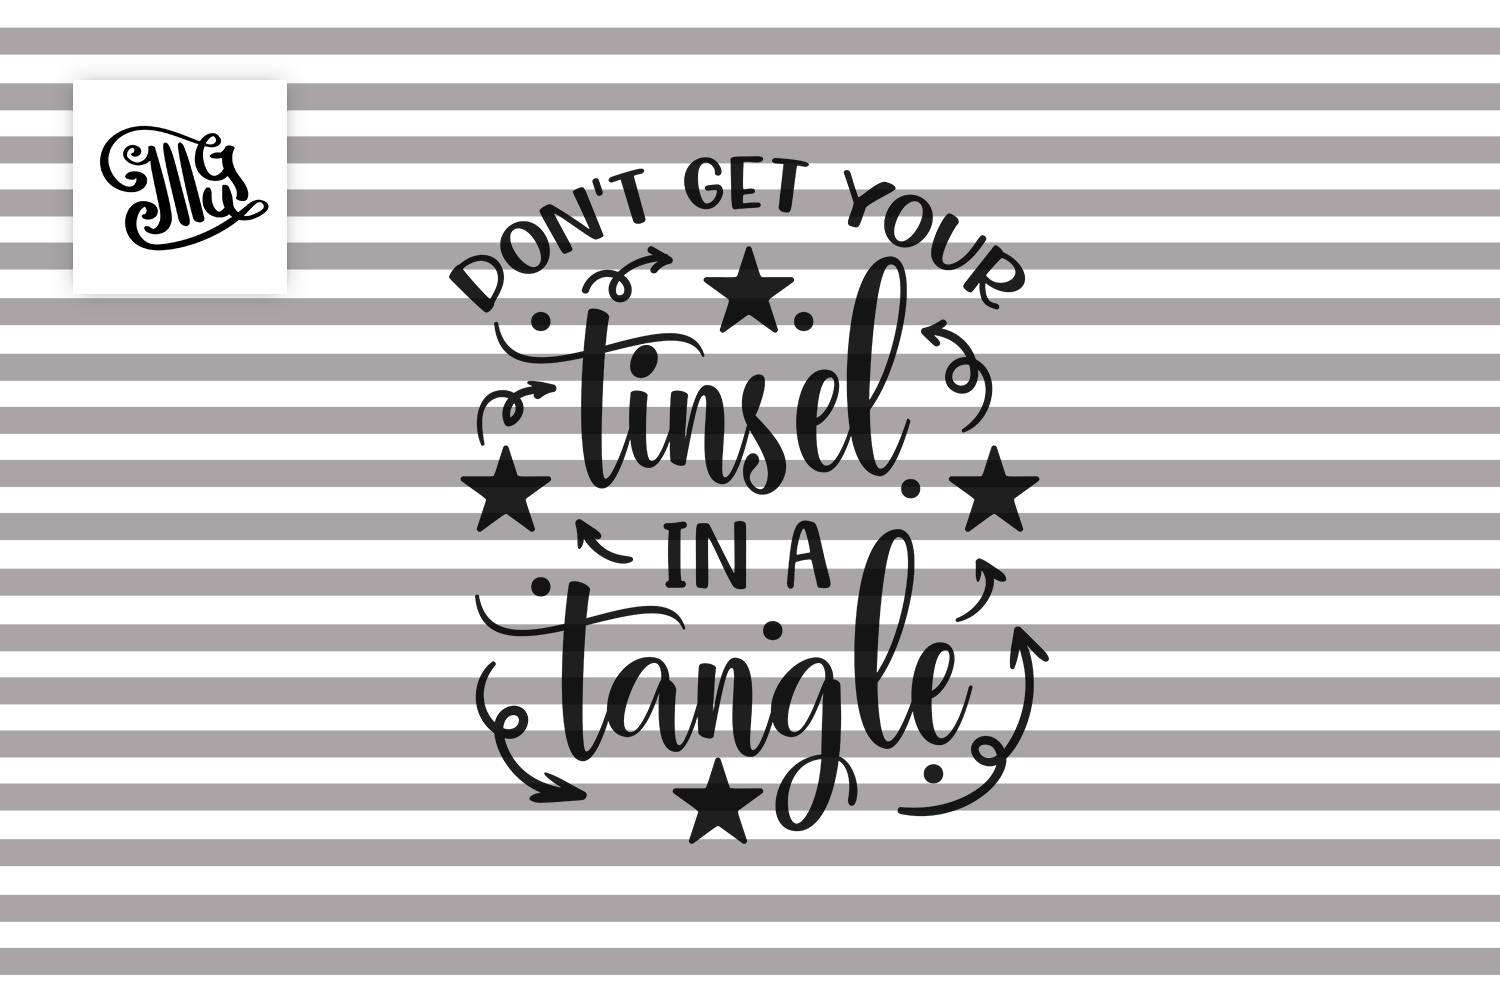 Don't get your tinsel in a tangle Christmas sayings example image 2